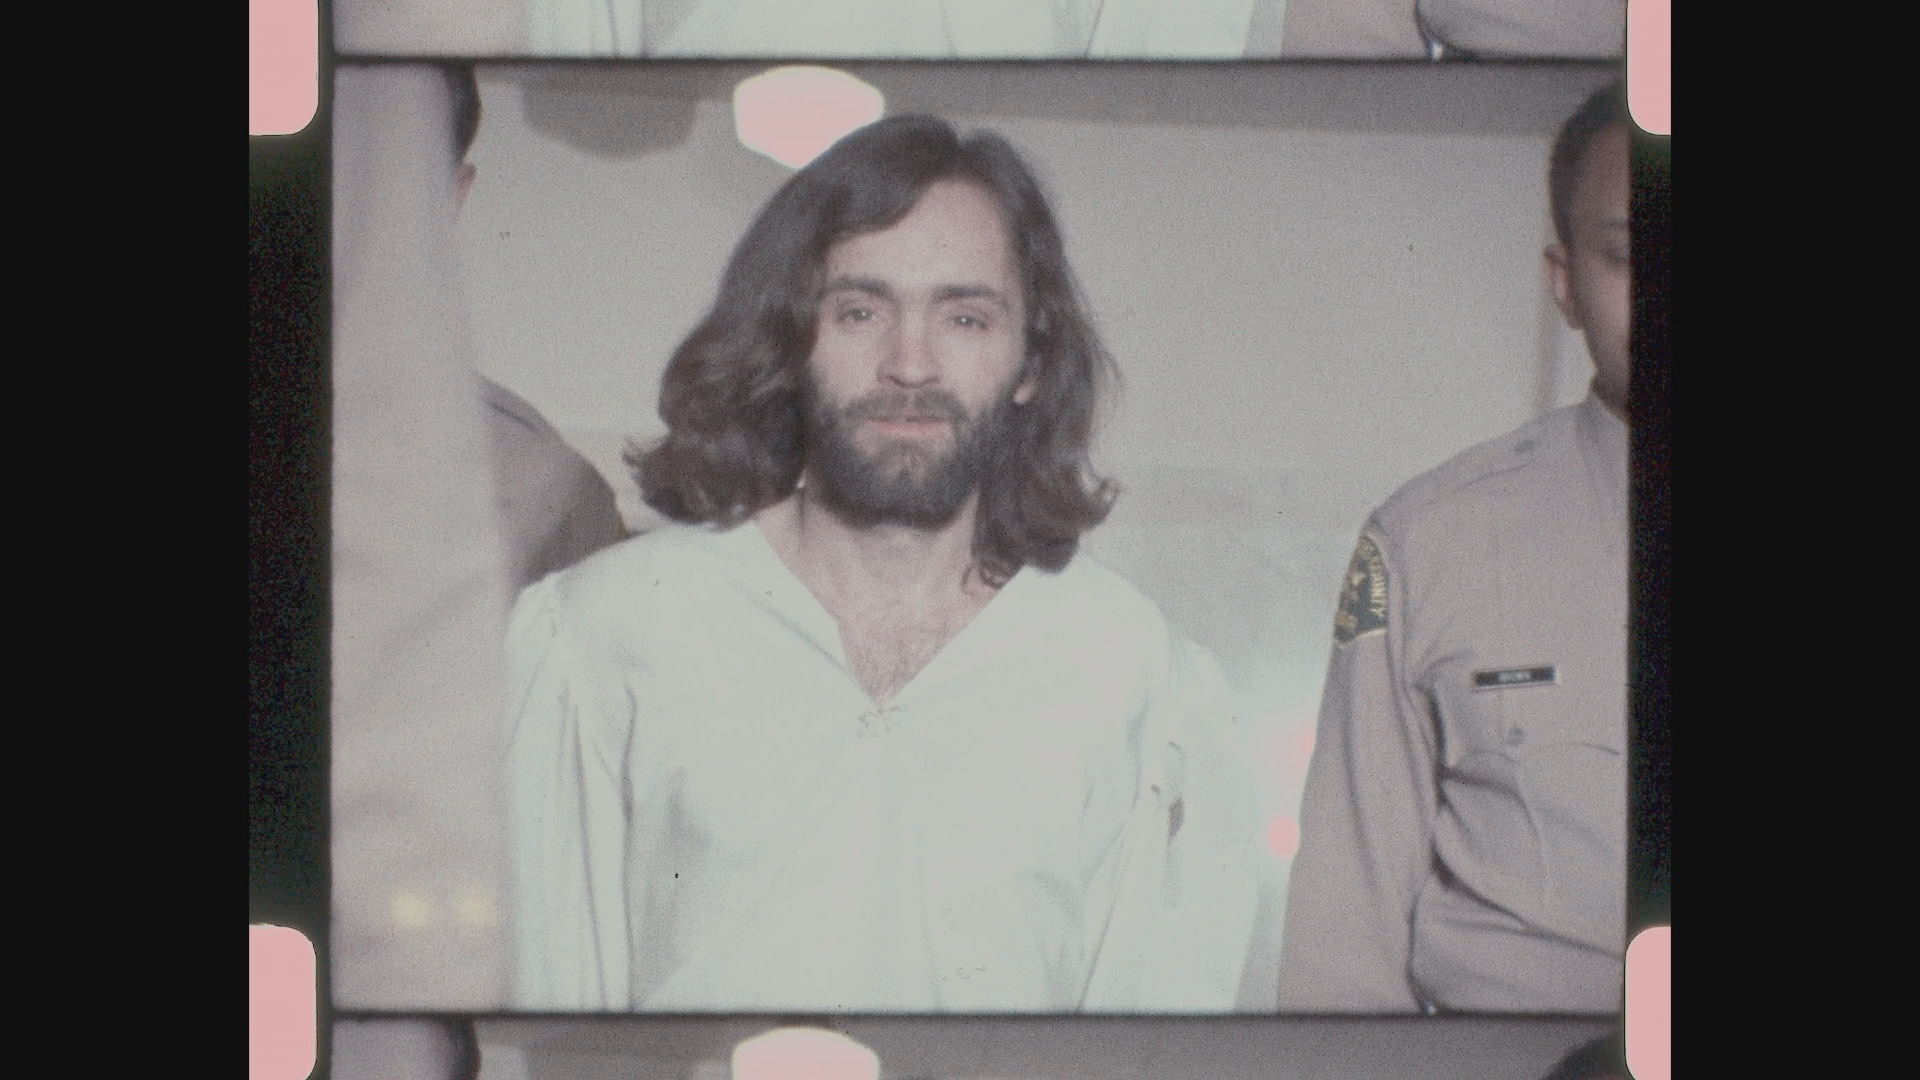 Charles Manson: The Lost Tapes: Manson in una scena del documentario